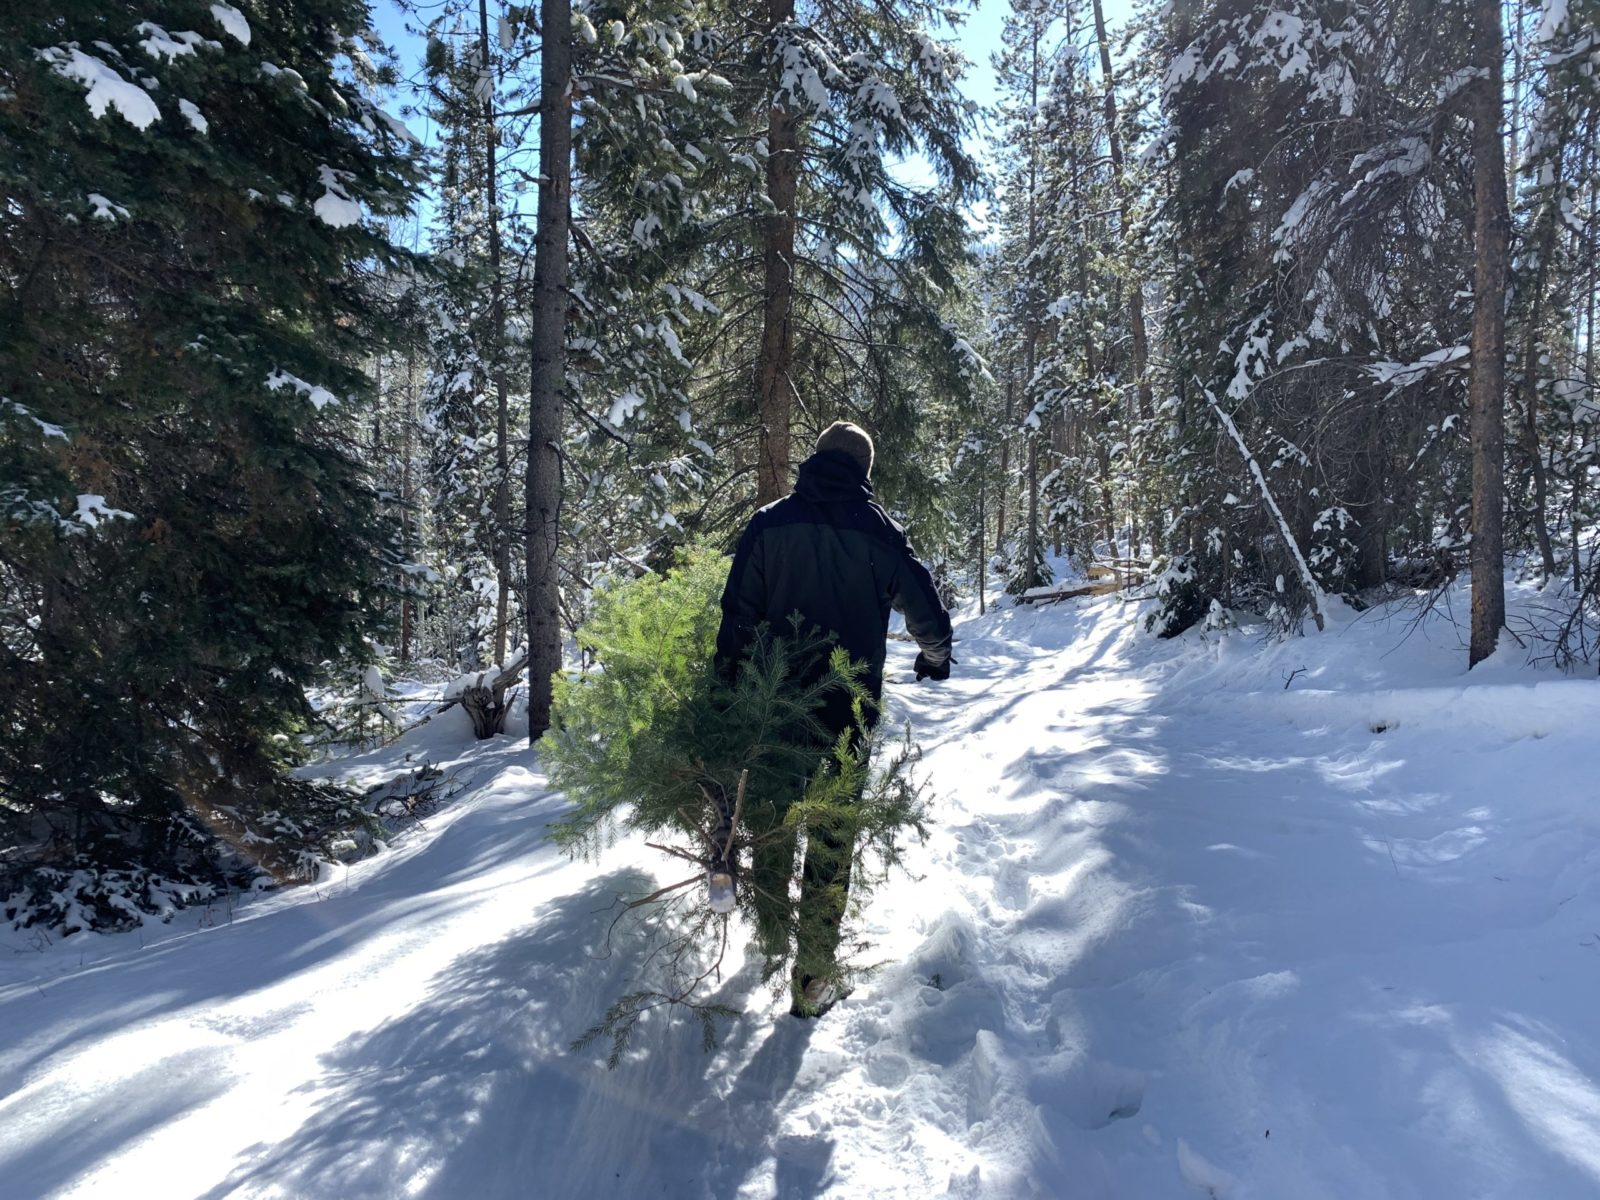 Where to Cut a Christmas Tree in Colorado's Forest 2020